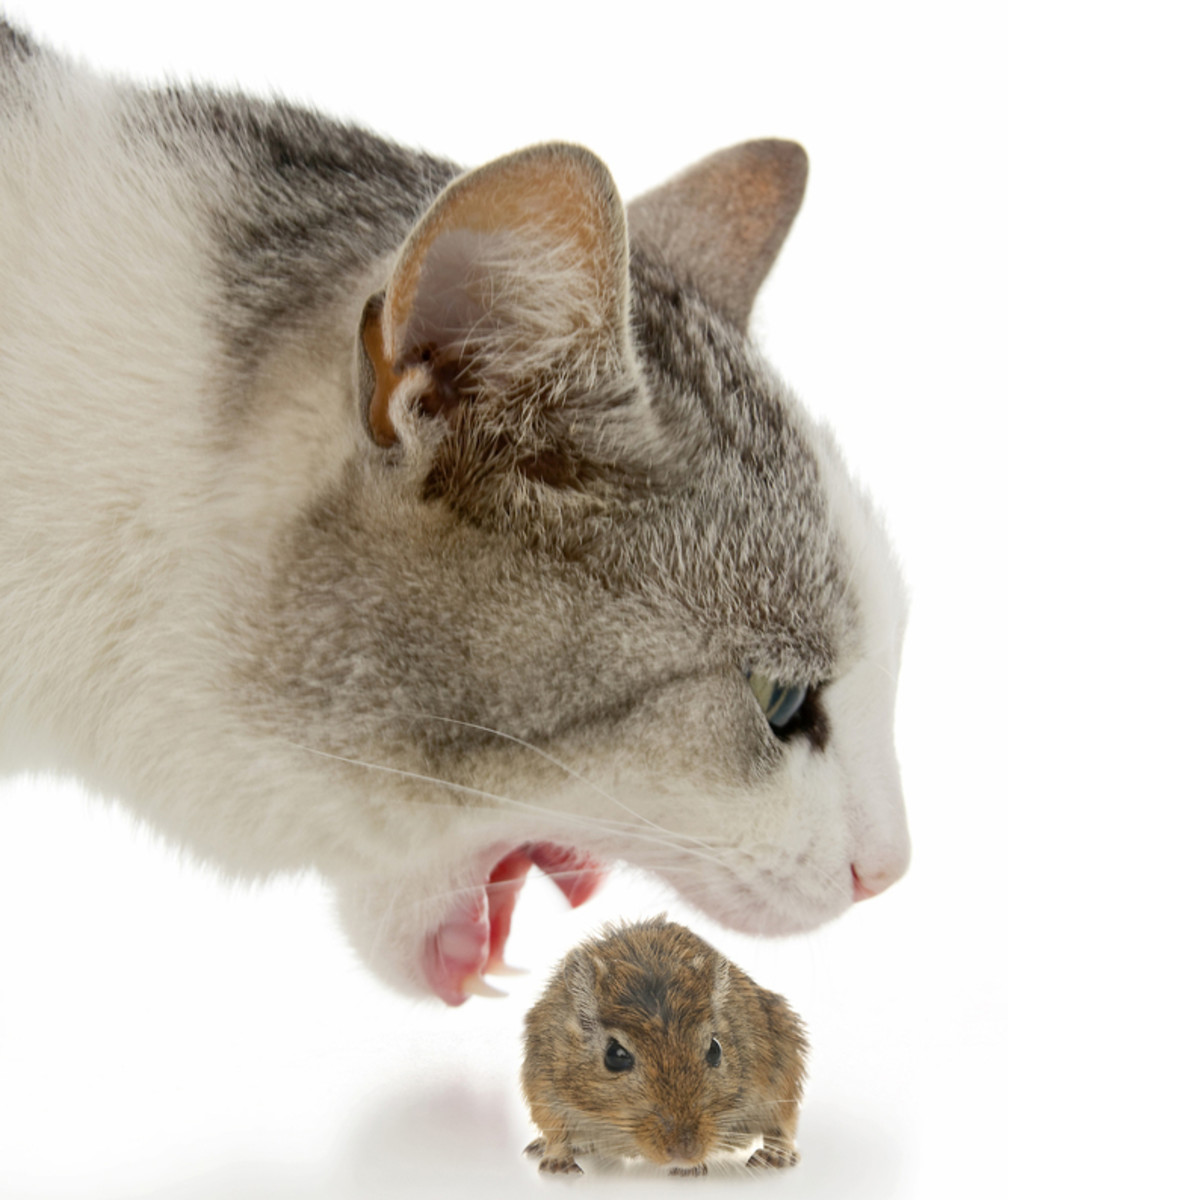 Cat Eating Computer Mouse